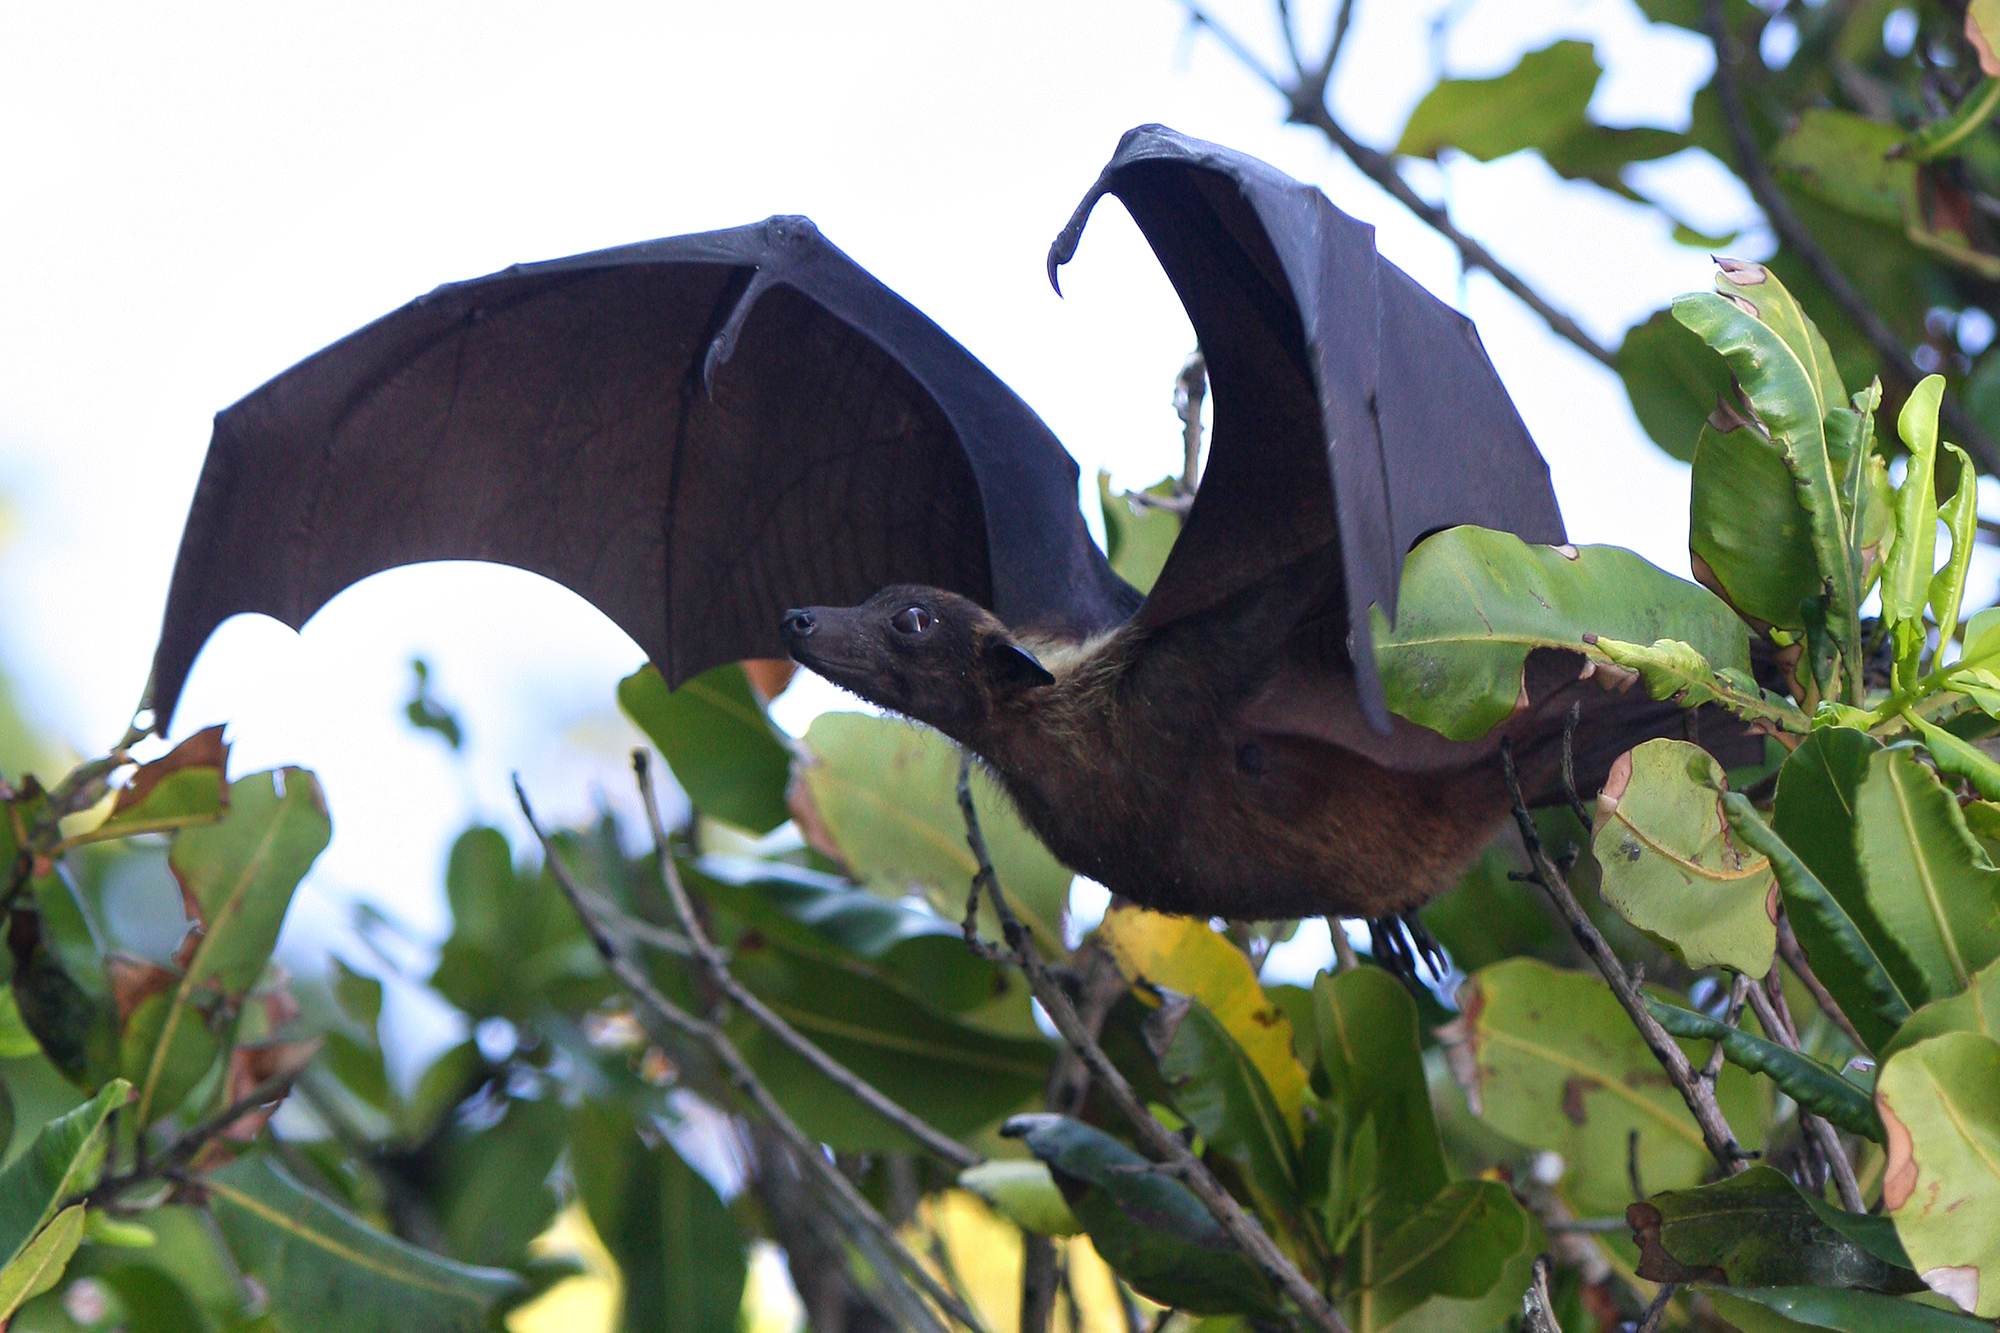 INDIAN FLYING FOX (Petropus giganteus ariel)